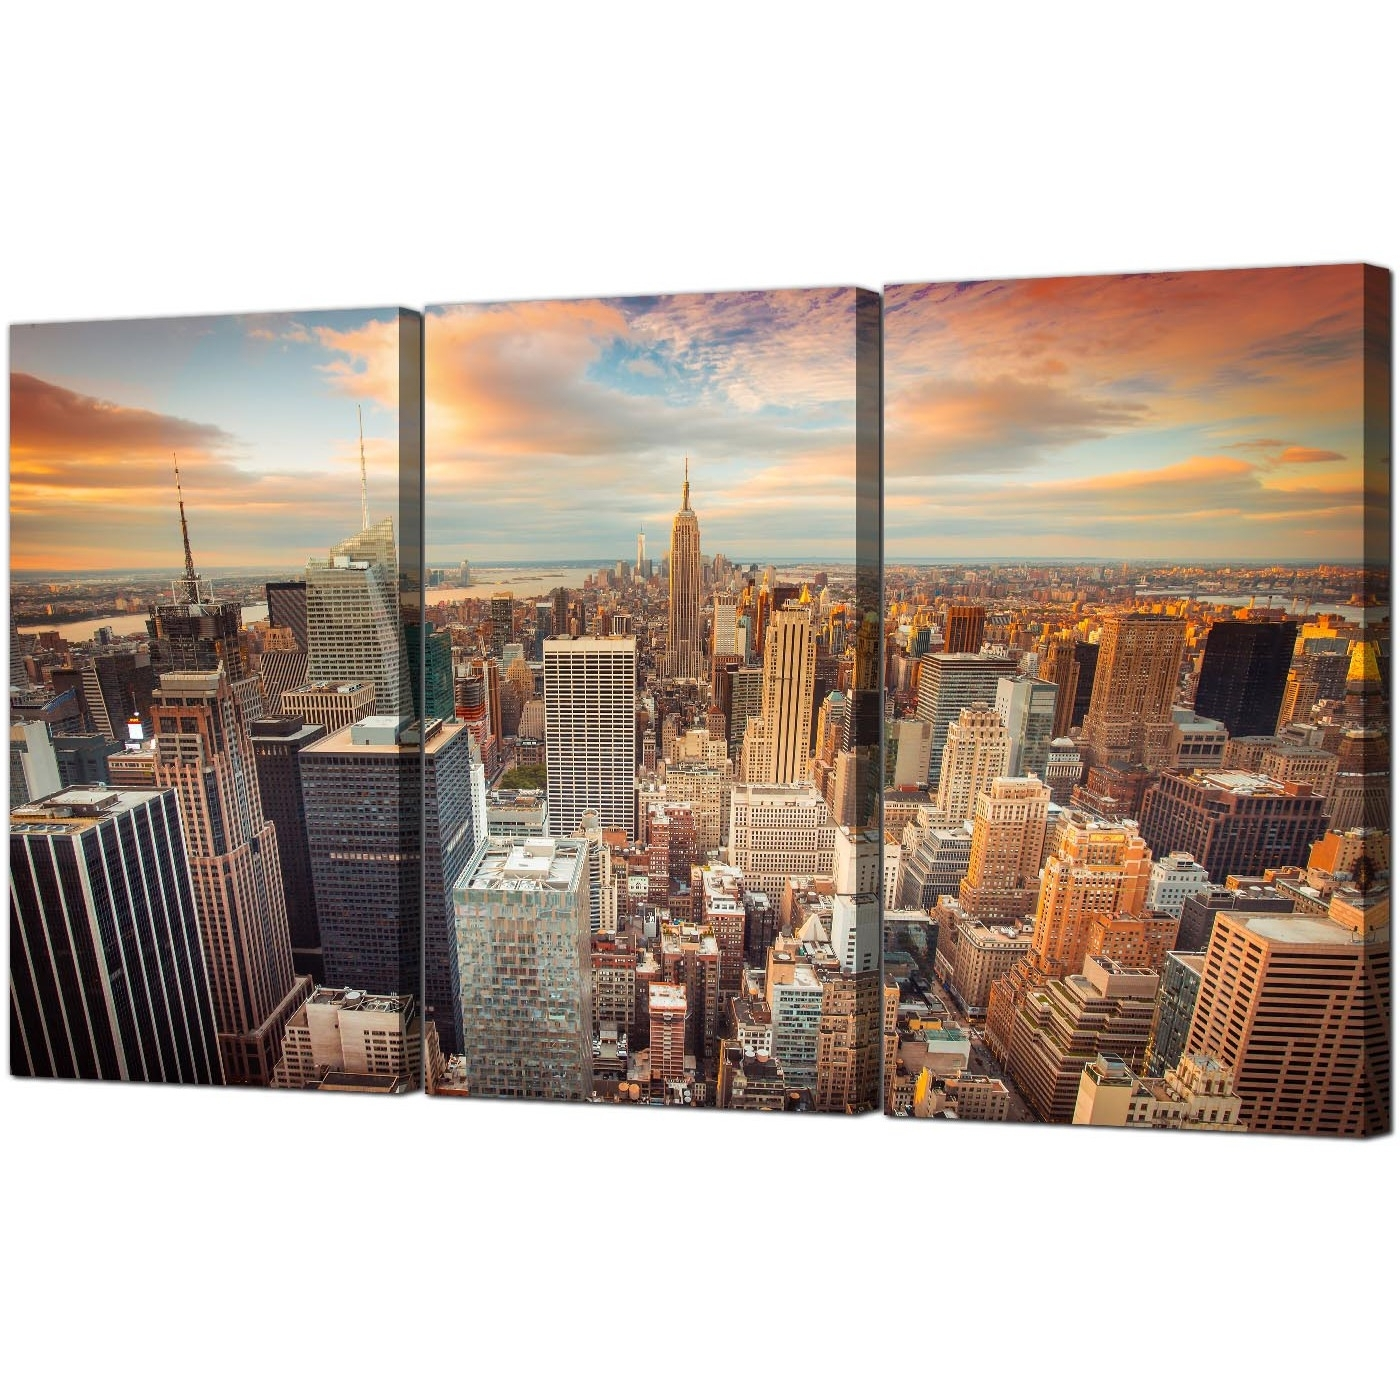 Best And Newest Cheap New York Skyline Canvas Wall Art 3 Panel For Your Living Room For Nyc Wall Art (View 2 of 15)